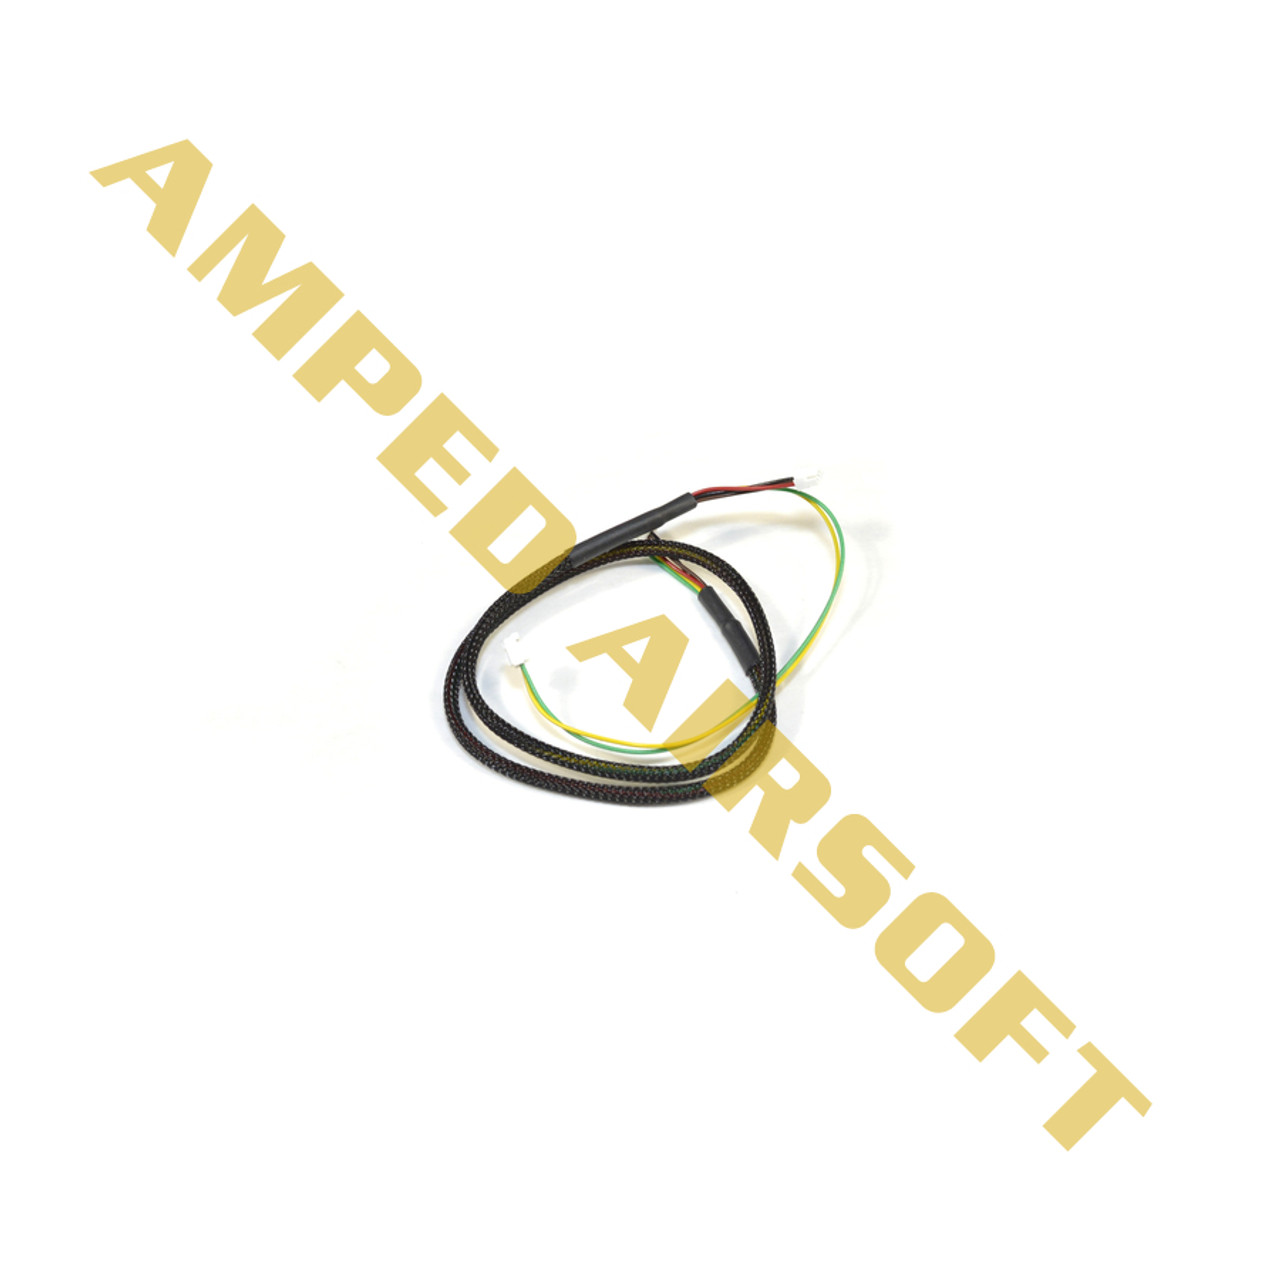 wiring wolverine airsoft v2 v3 custom 18 inch wire harness__93095.1470675338?c=2 airsoft wire harness (gen2 18\